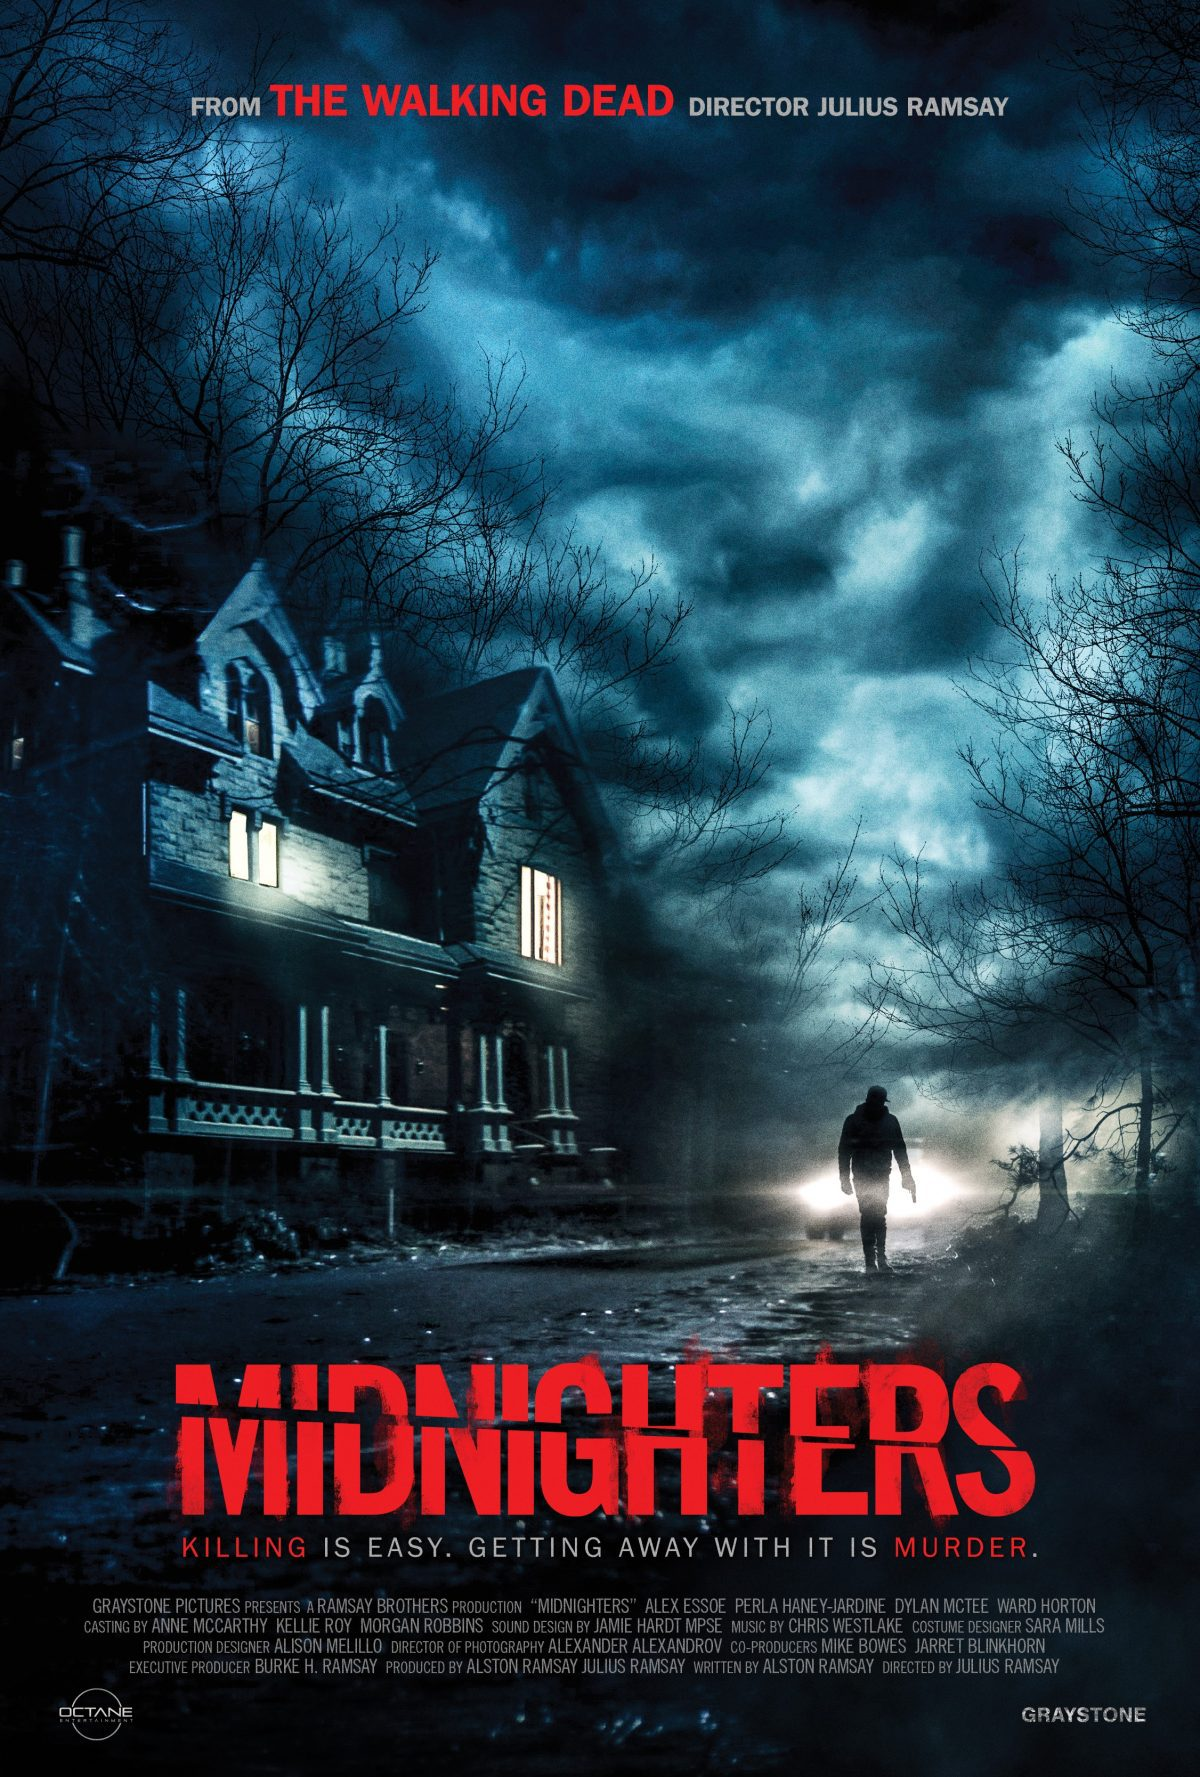 Midnighters-Julius-Ramsay